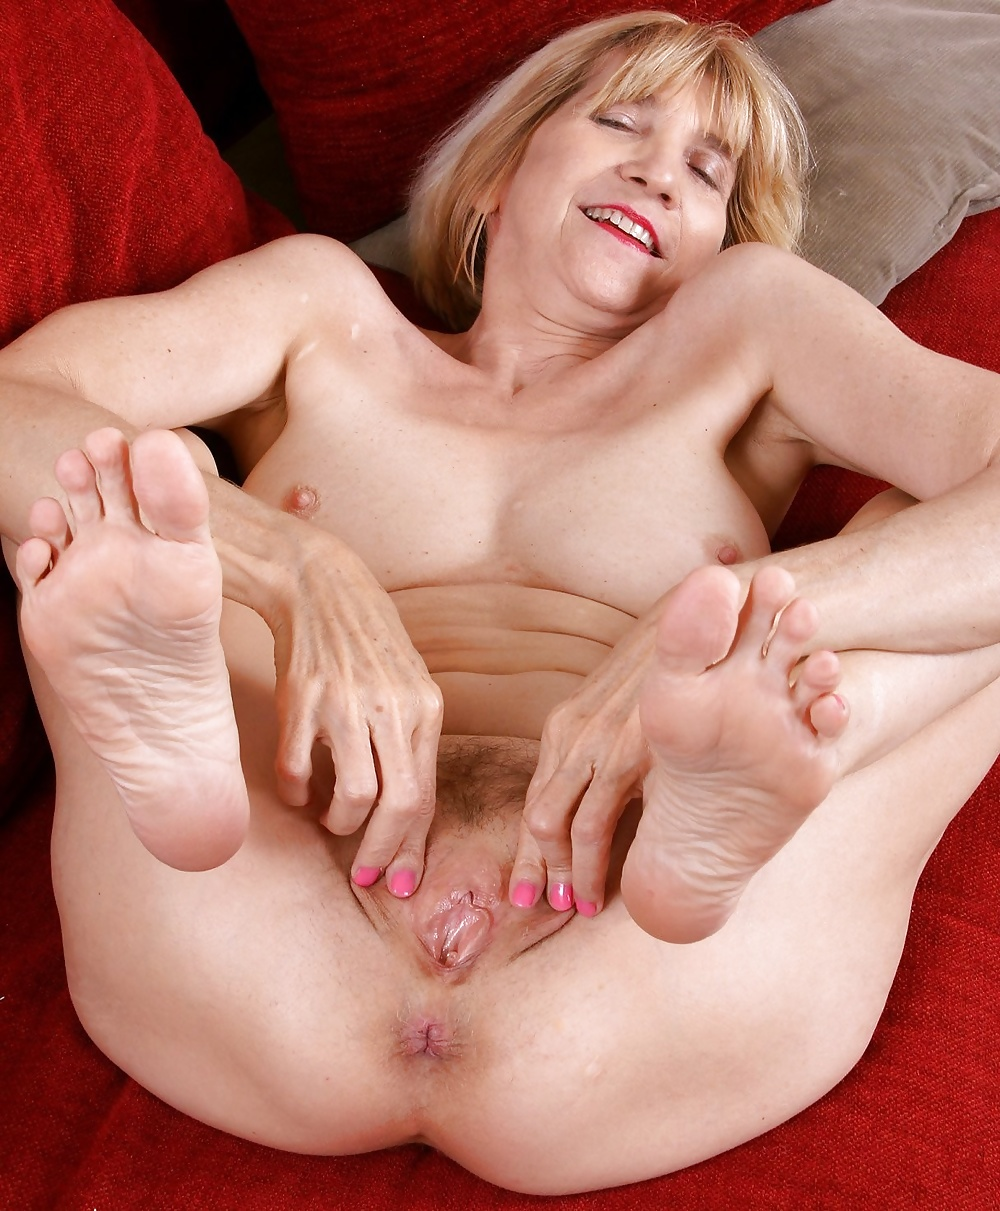 Granny pussy and feet